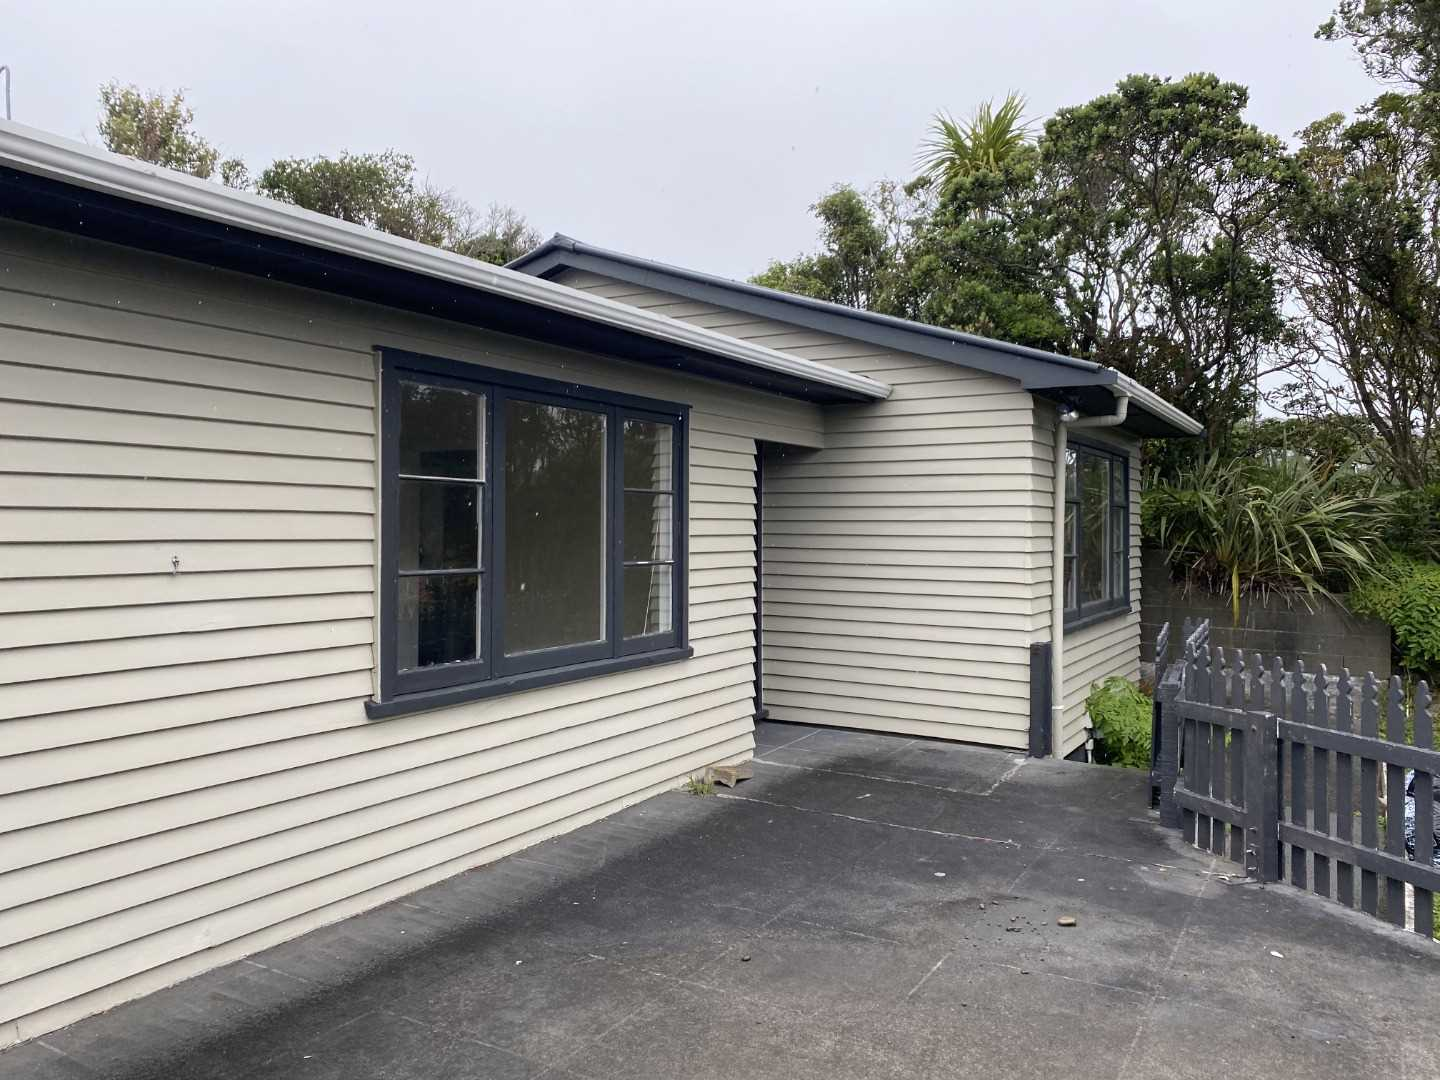 Real Estate For Rent Houses & Apartments : 3 Bedroom home in Newlands, Wellington